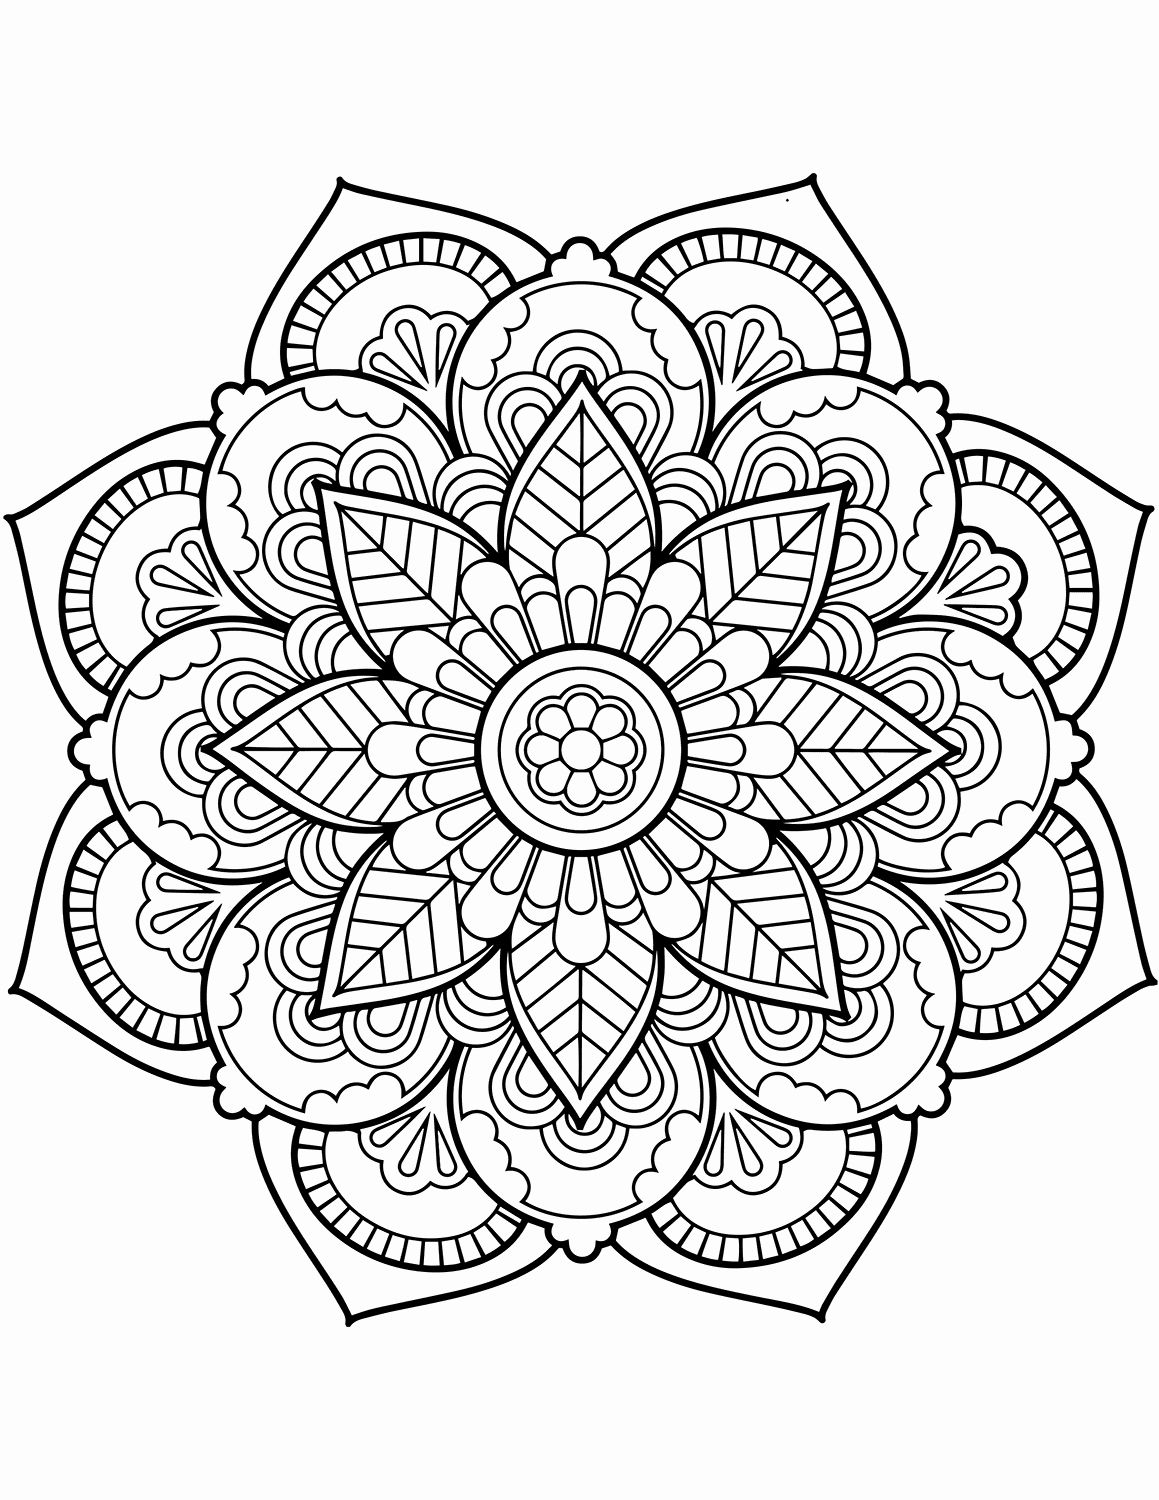 Coloring Pages Flowers To Print Luxury Coloring Books Astonishing Mandala Coloring Sheets B Flower Coloring Pages Mandala Coloring Pages Pattern Coloring Pages